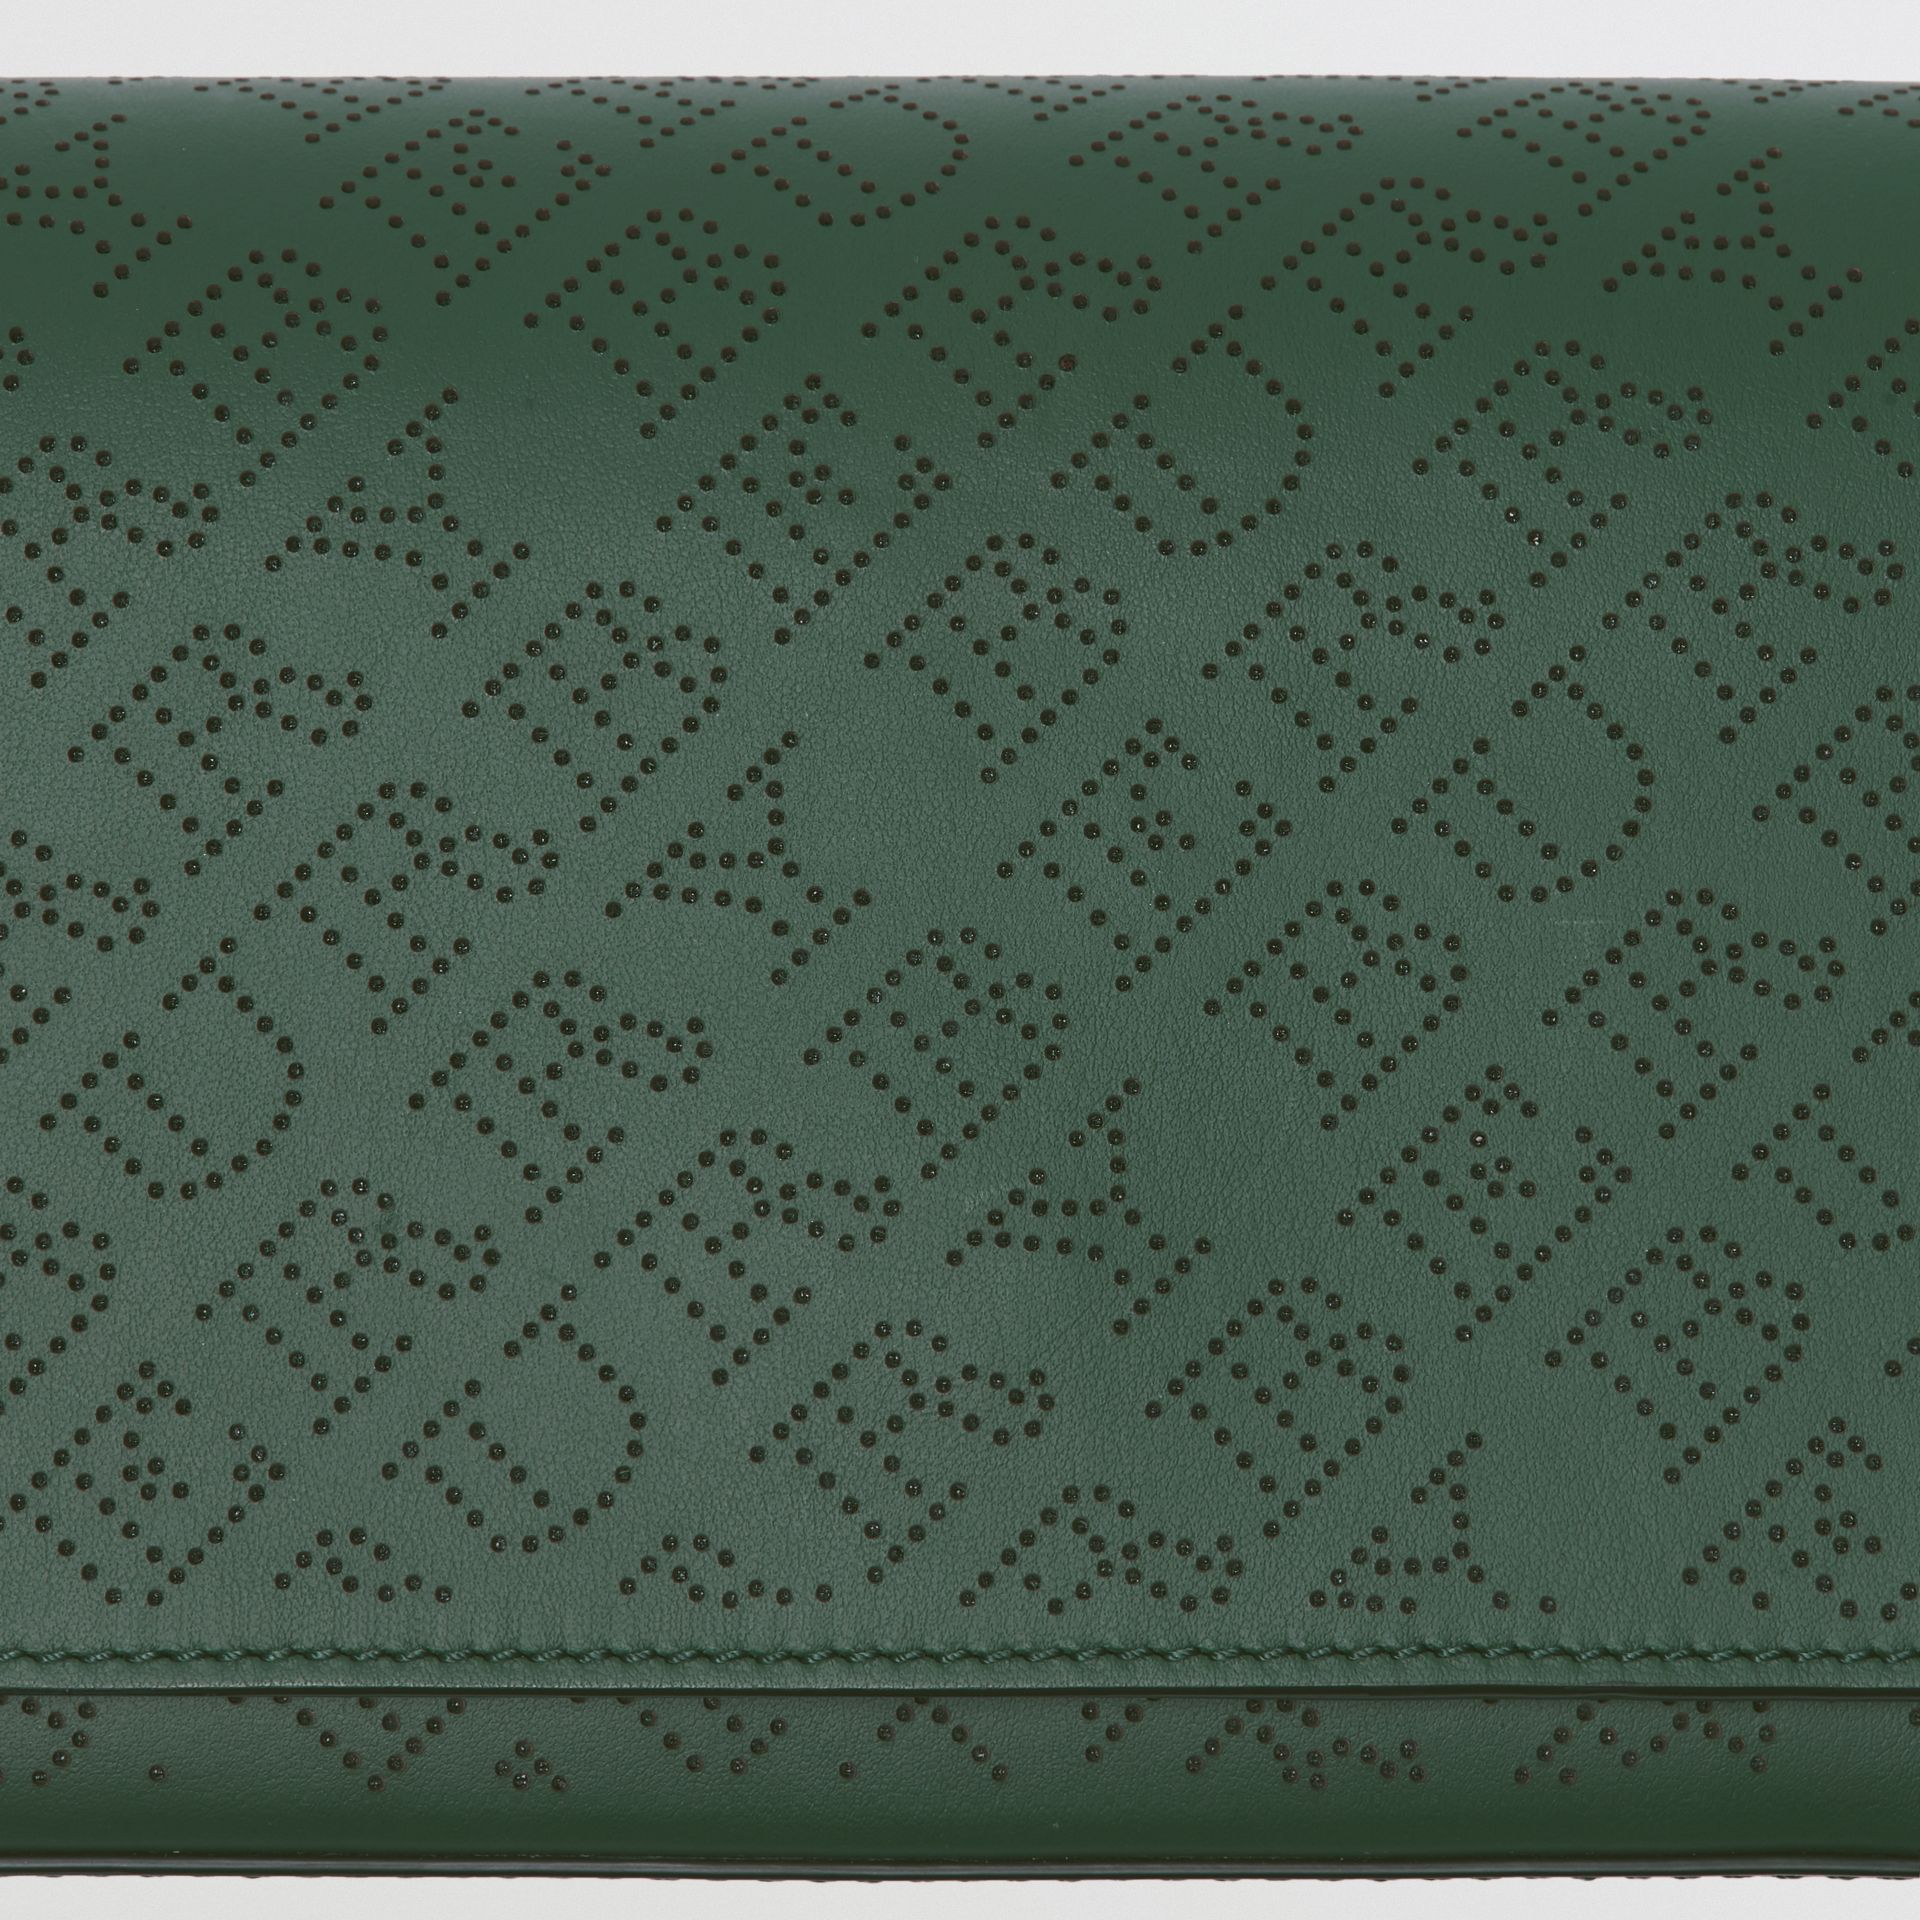 Perforated Logo Leather Wallet with Detachable Strap in Vintage Green - Women | Burberry - gallery image 1